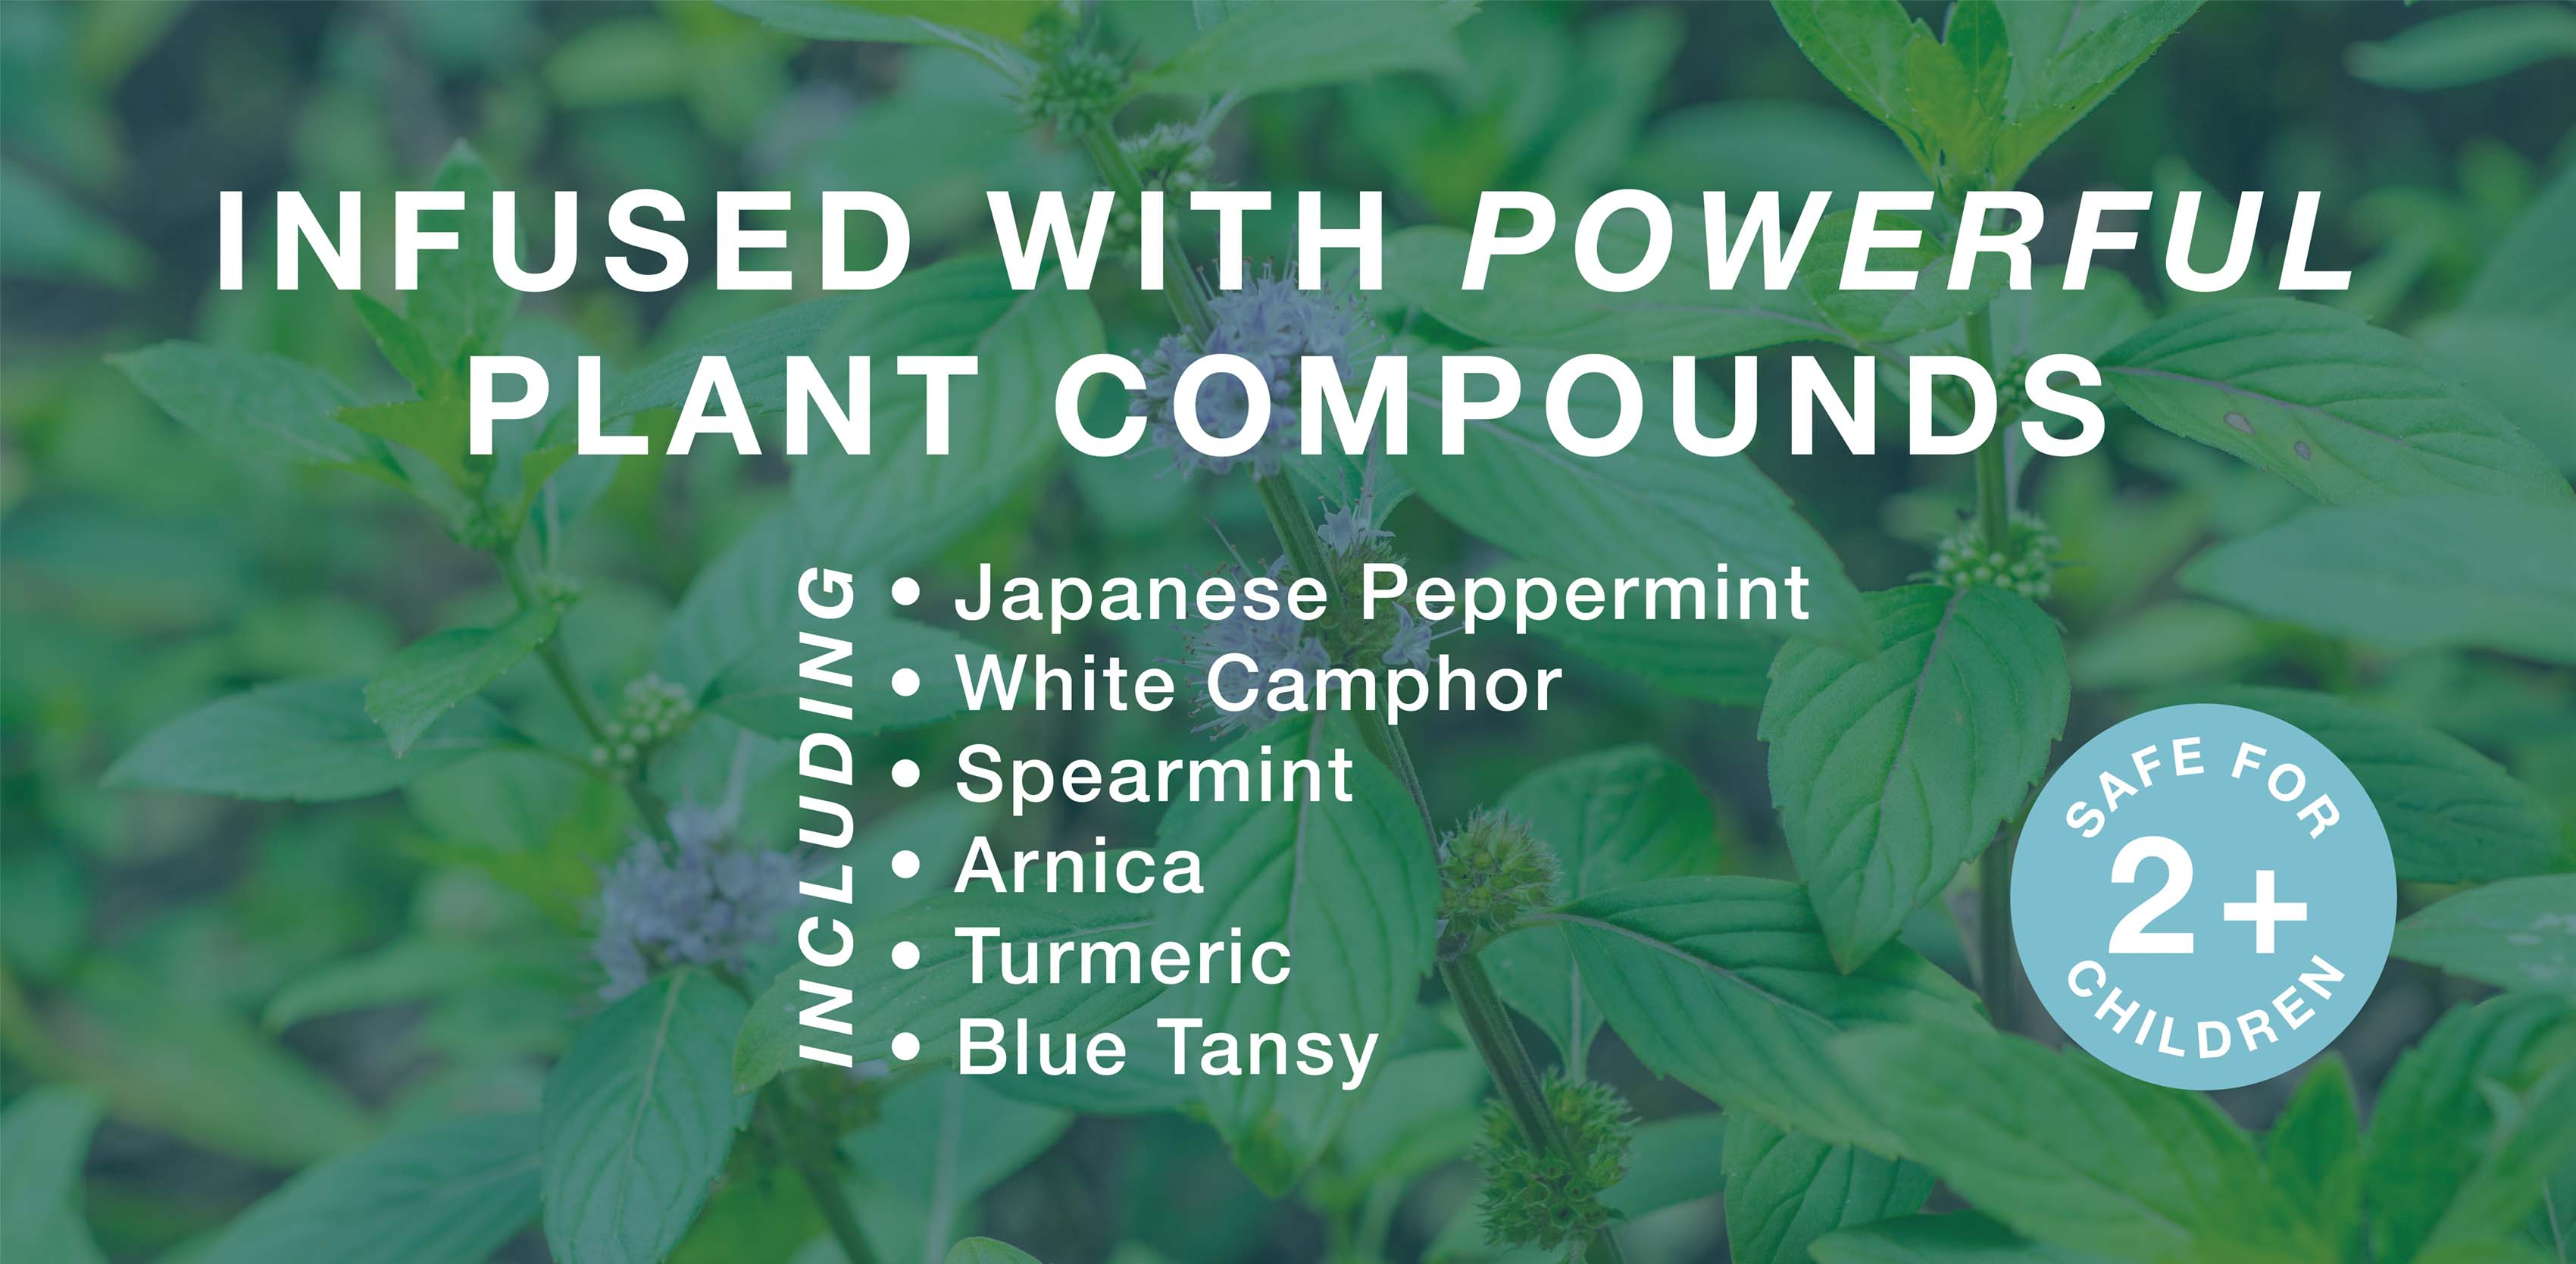 In fused with powerful plant compounds including Japanese peppermint, white camphor and spearmint.